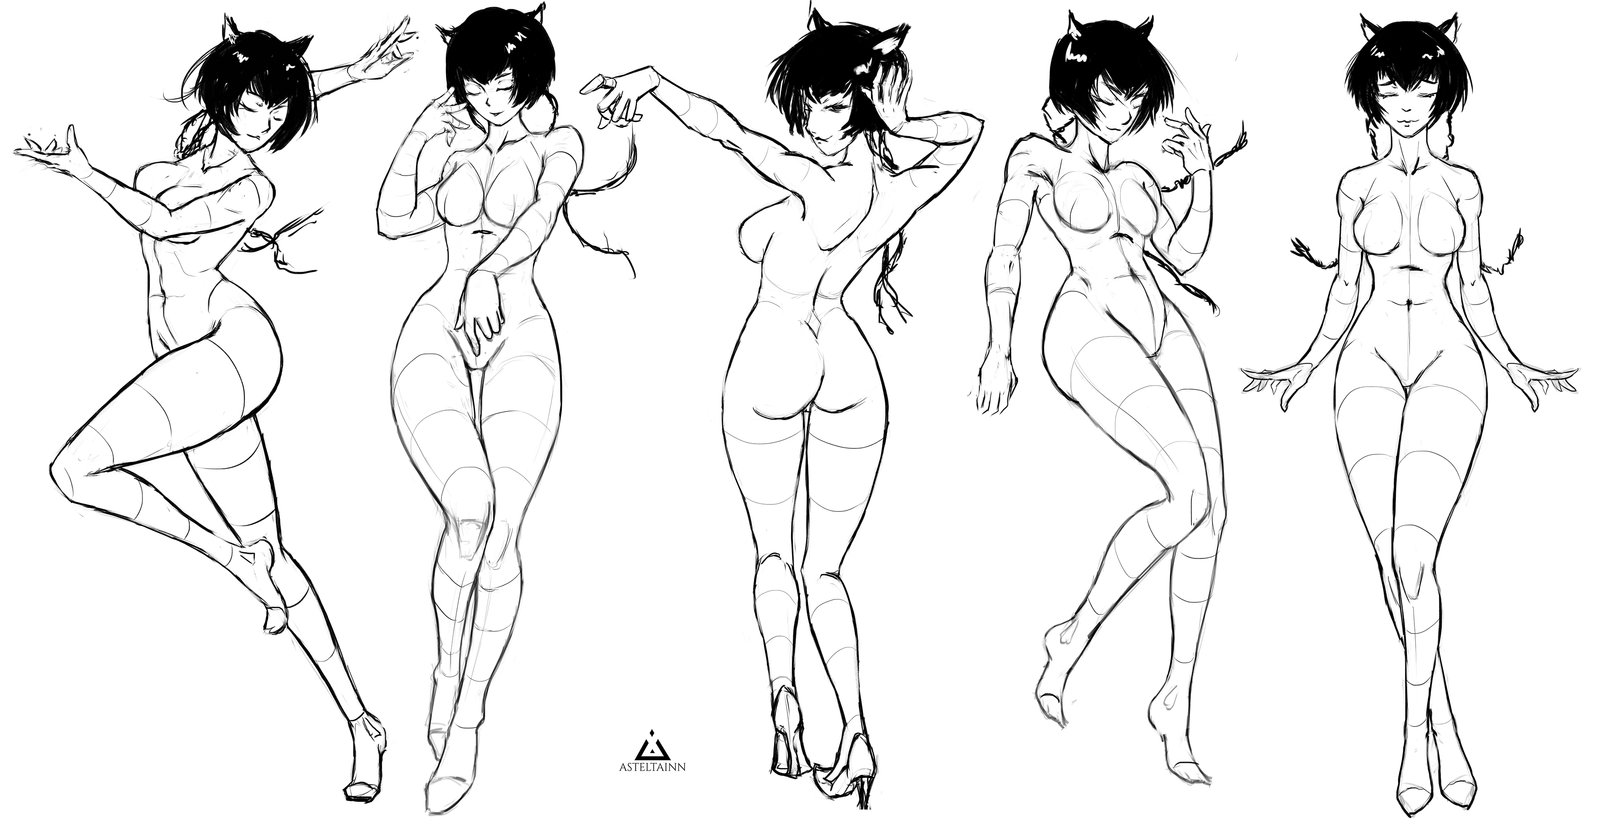 Body Poses Drawing at GetDrawings.com | Free for personal use Body ...